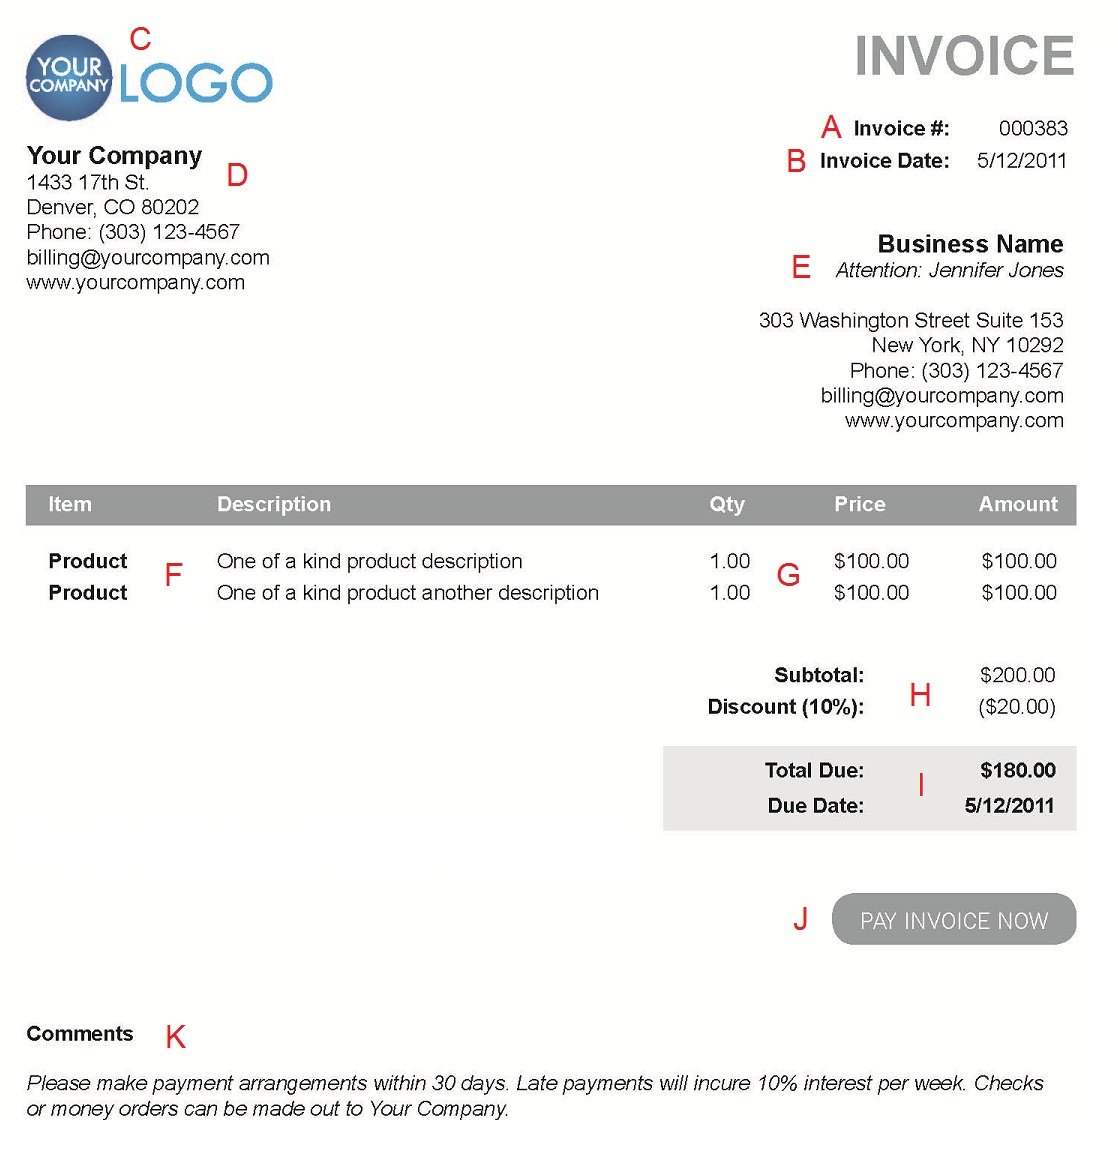 Aaaaeroincus  Remarkable The  Different Sections Of An Electronic Payment Invoice With Excellent A  With Astonishing Sample Billing Invoice Also Sample Invoice Template Word In Addition Free Service Invoice Template And Find Invoice Price As Well As Invoice Form Template Additionally Factoring Invoice From Paysimplecom With Aaaaeroincus  Excellent The  Different Sections Of An Electronic Payment Invoice With Astonishing A  And Remarkable Sample Billing Invoice Also Sample Invoice Template Word In Addition Free Service Invoice Template From Paysimplecom